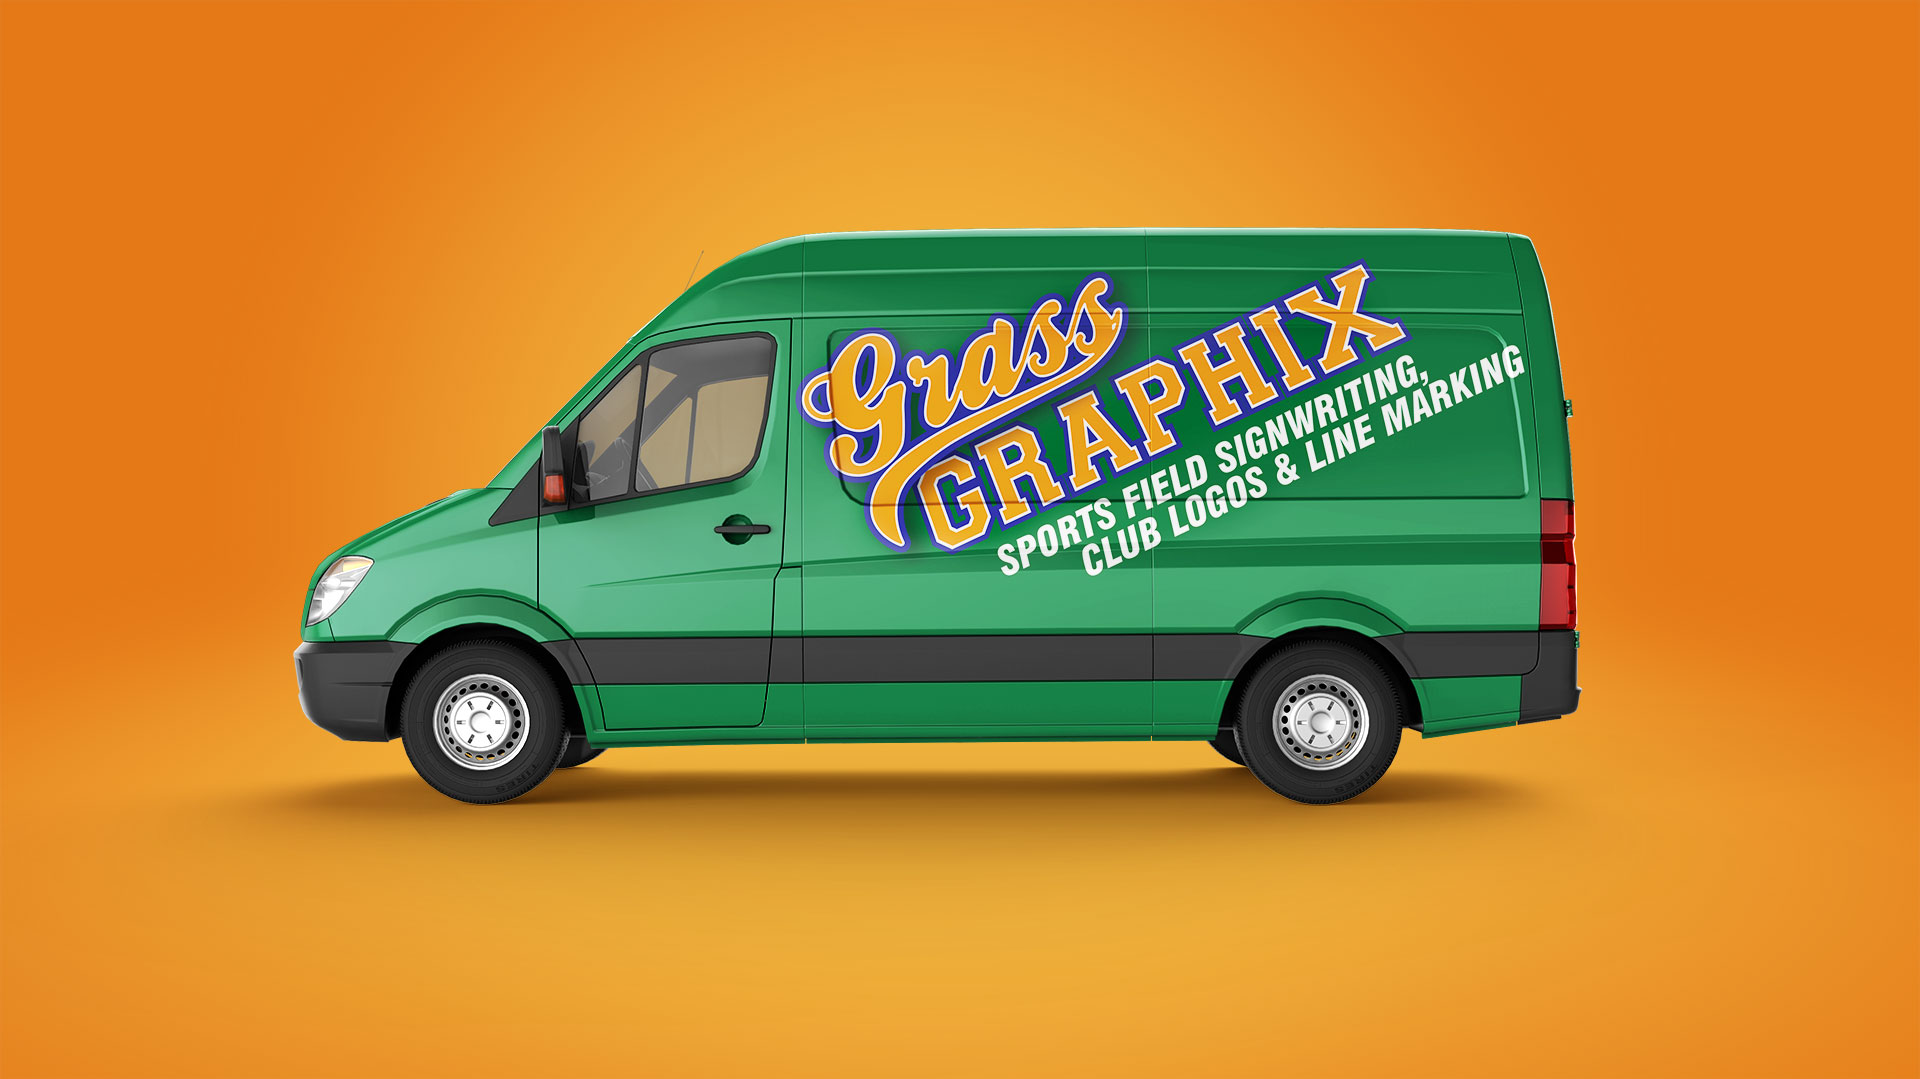 Grass Graphix complete branding project